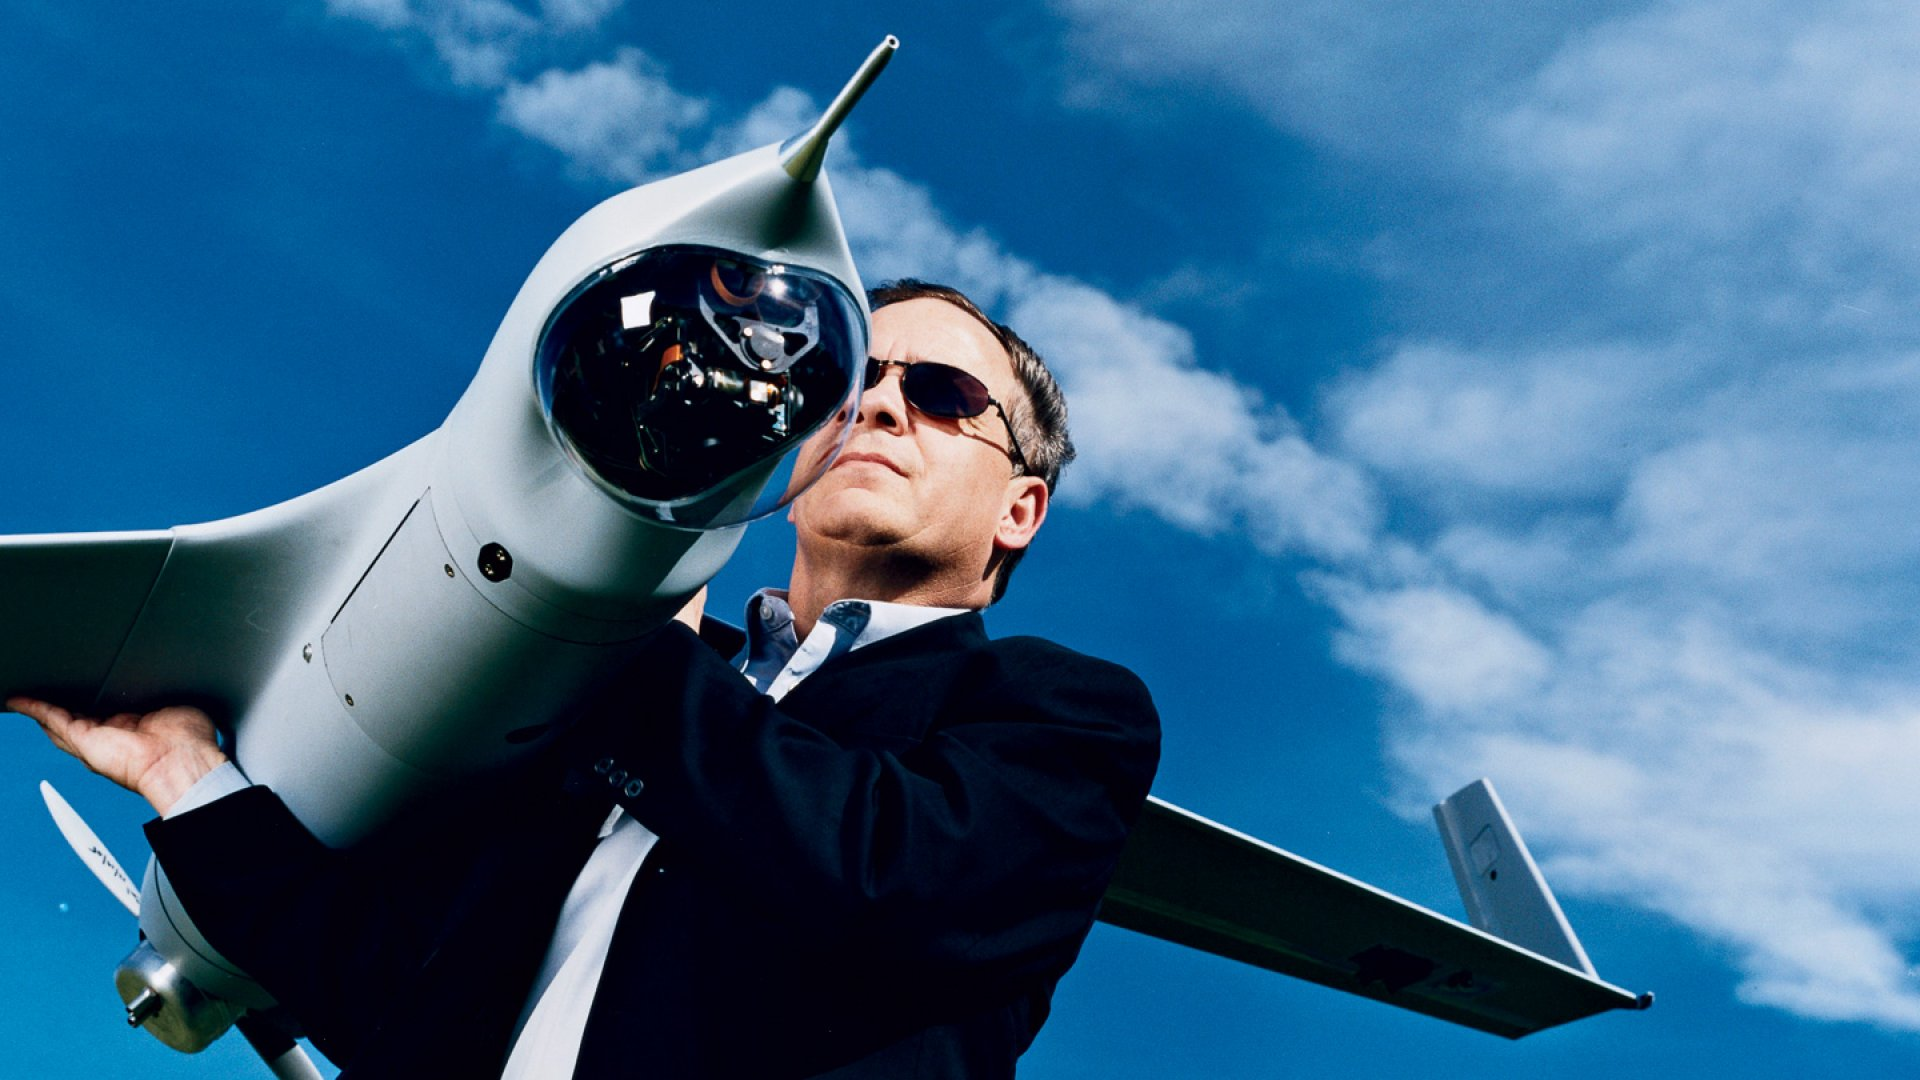 FLYBOY Steven Sliwa and the ScanEagle, an unmanned surveillance aircraft used to spy on bad guys in Iraq.